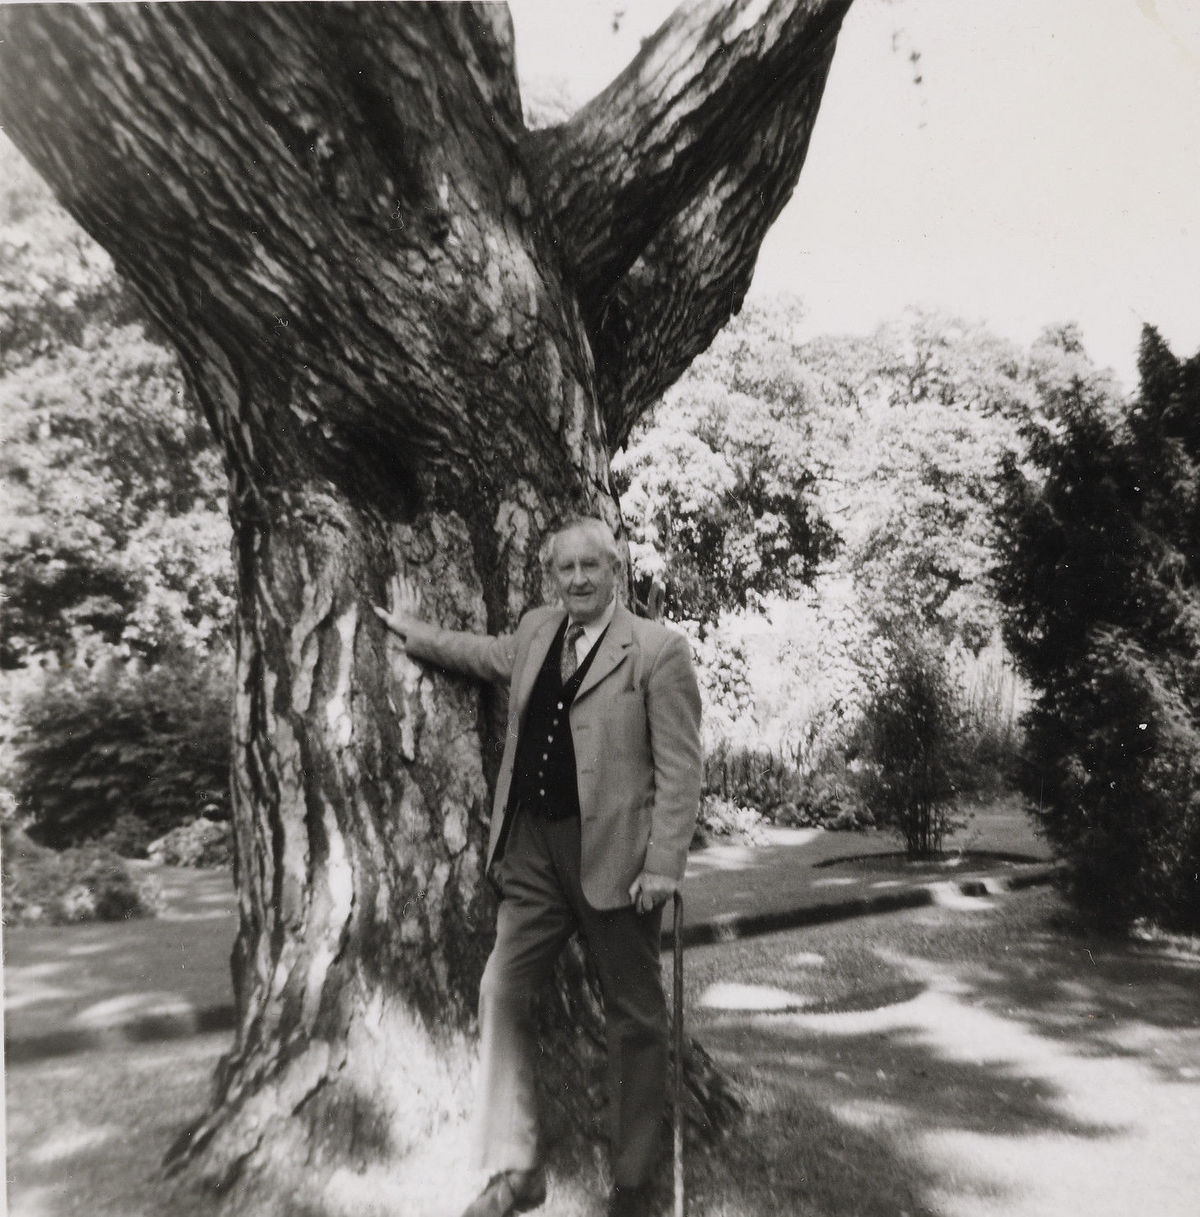 Photography source: The Tolkien Trust 1977